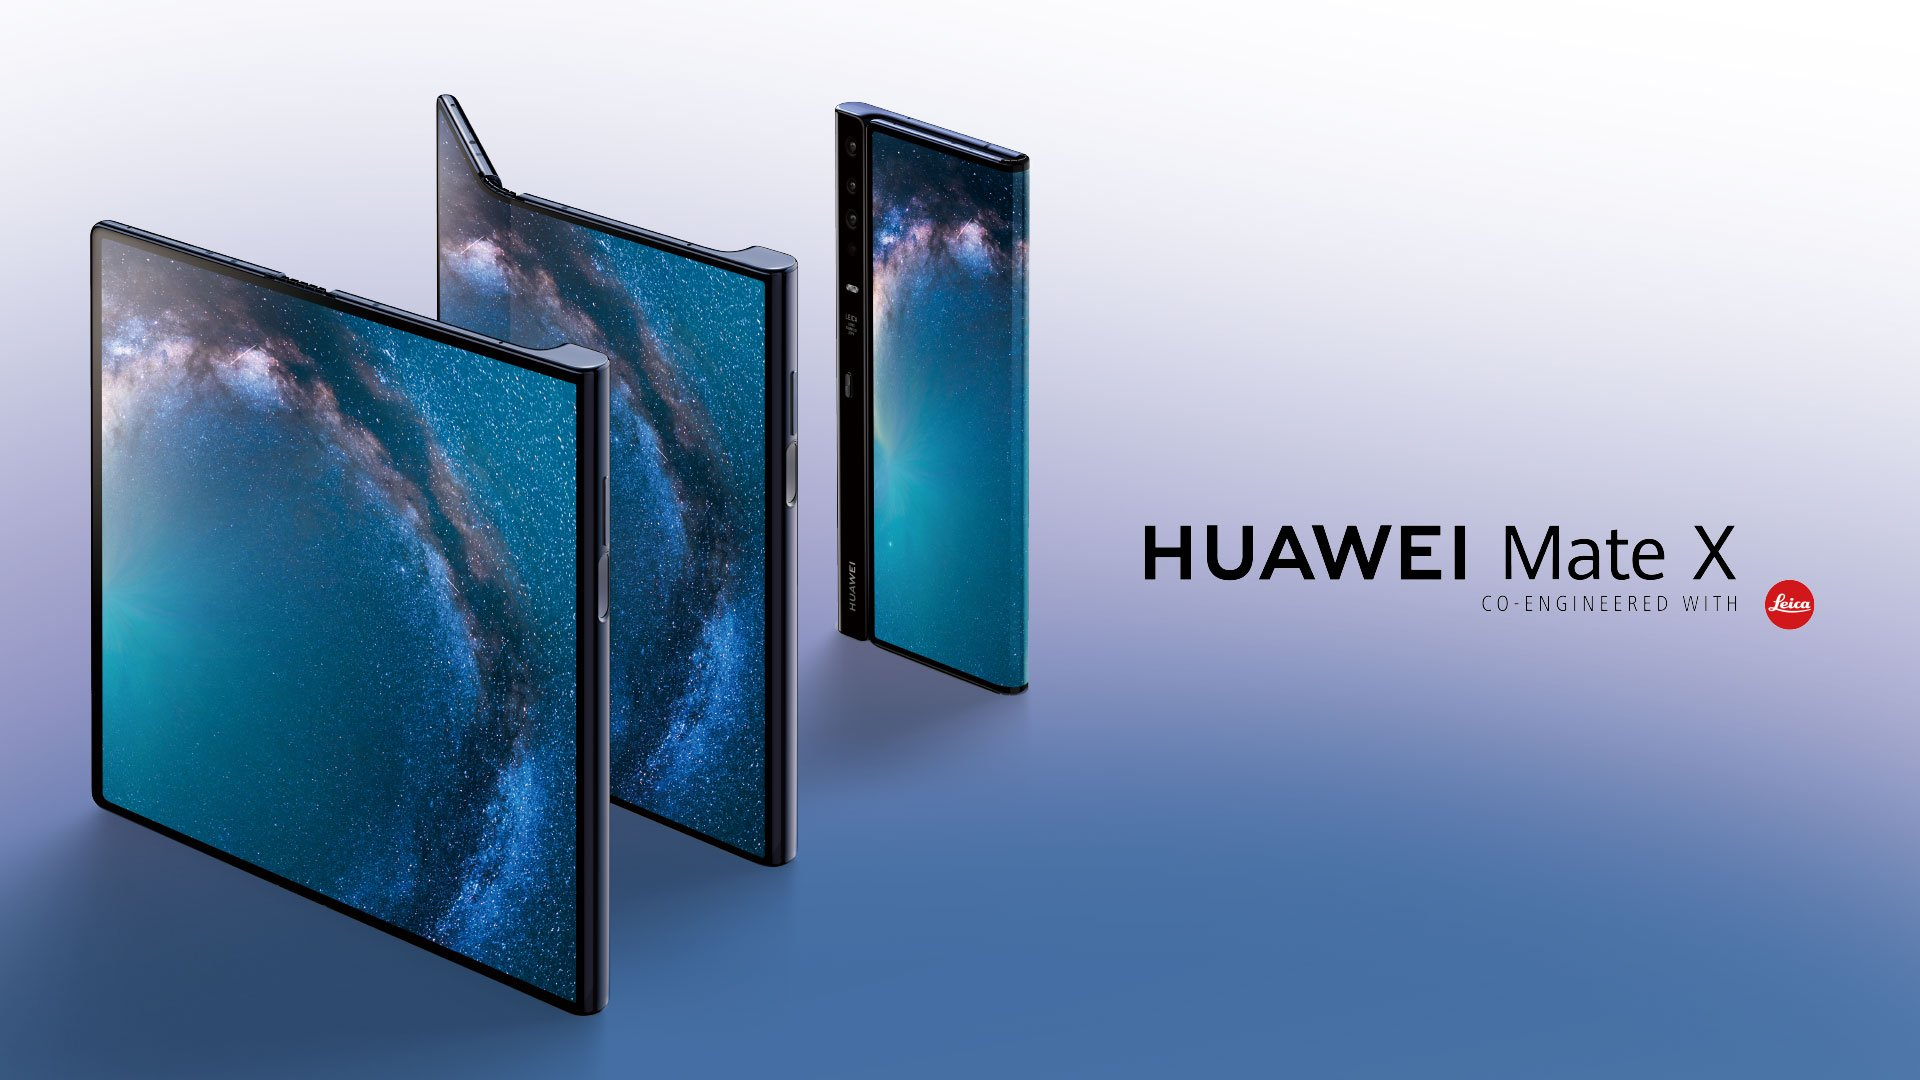 D0LLX5kX4AA1E62 - Huawei unveils the Huawei Mate X - The world's first 5G Foldable smartphone priced at $2600